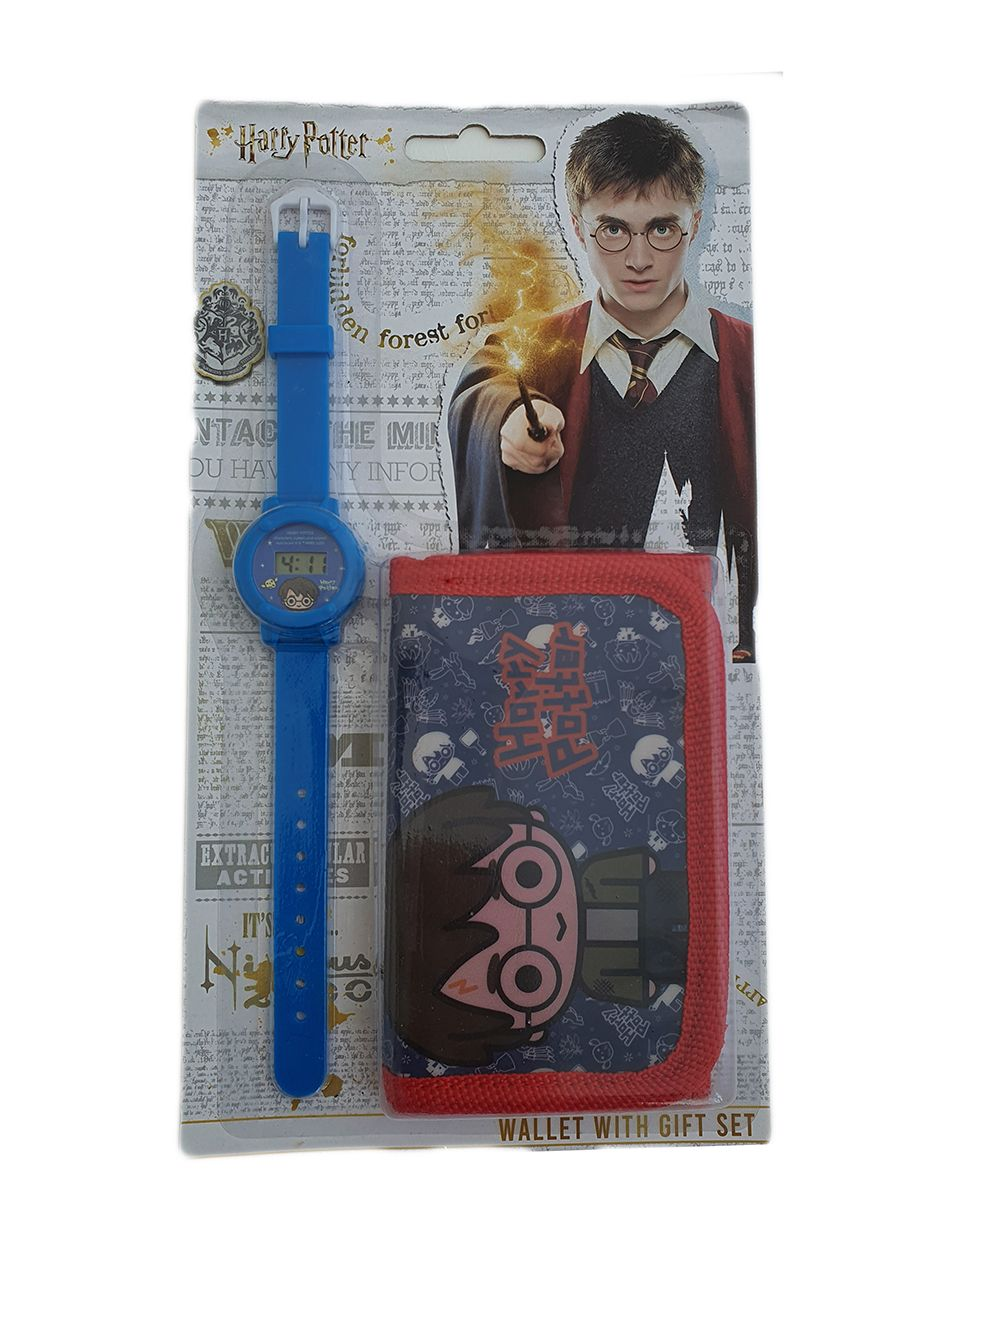 Harry Potter gifting wallet with gift set